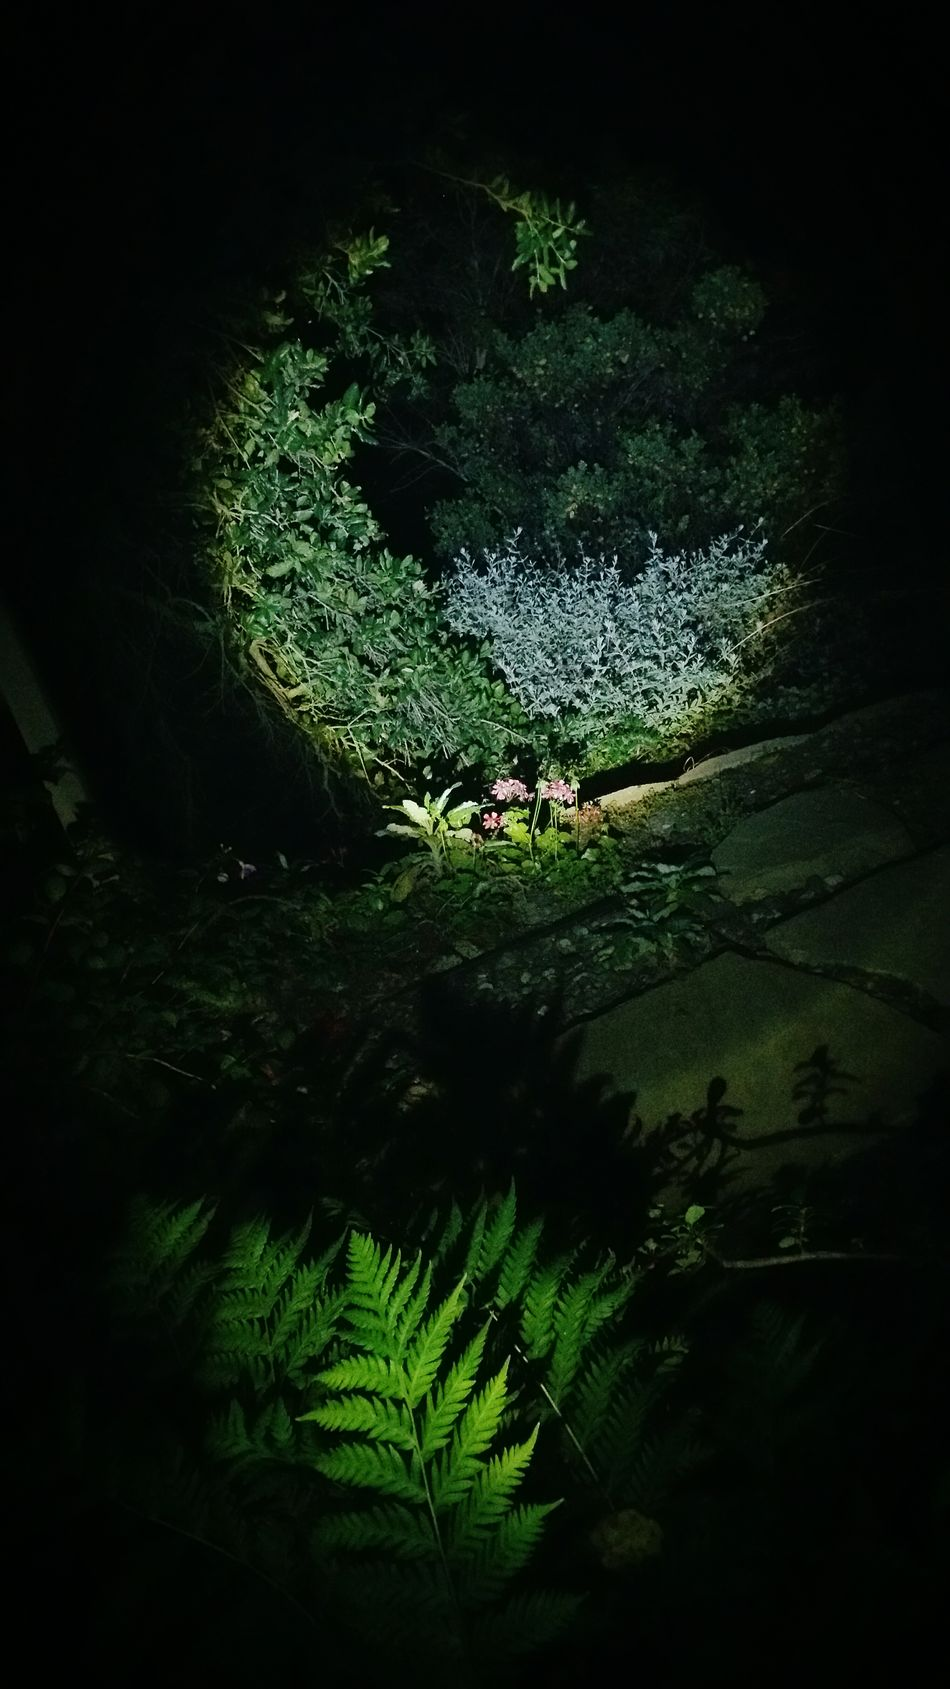 Nightphotography Night Oak Trees Fern Greenery Flashlight Residential Estates EyeEm Best Shots Taking Photos Nature Outdoors Randomshot Minimalism Plant Floorsflowers Overgrown Tree Trunk Enjoying Life